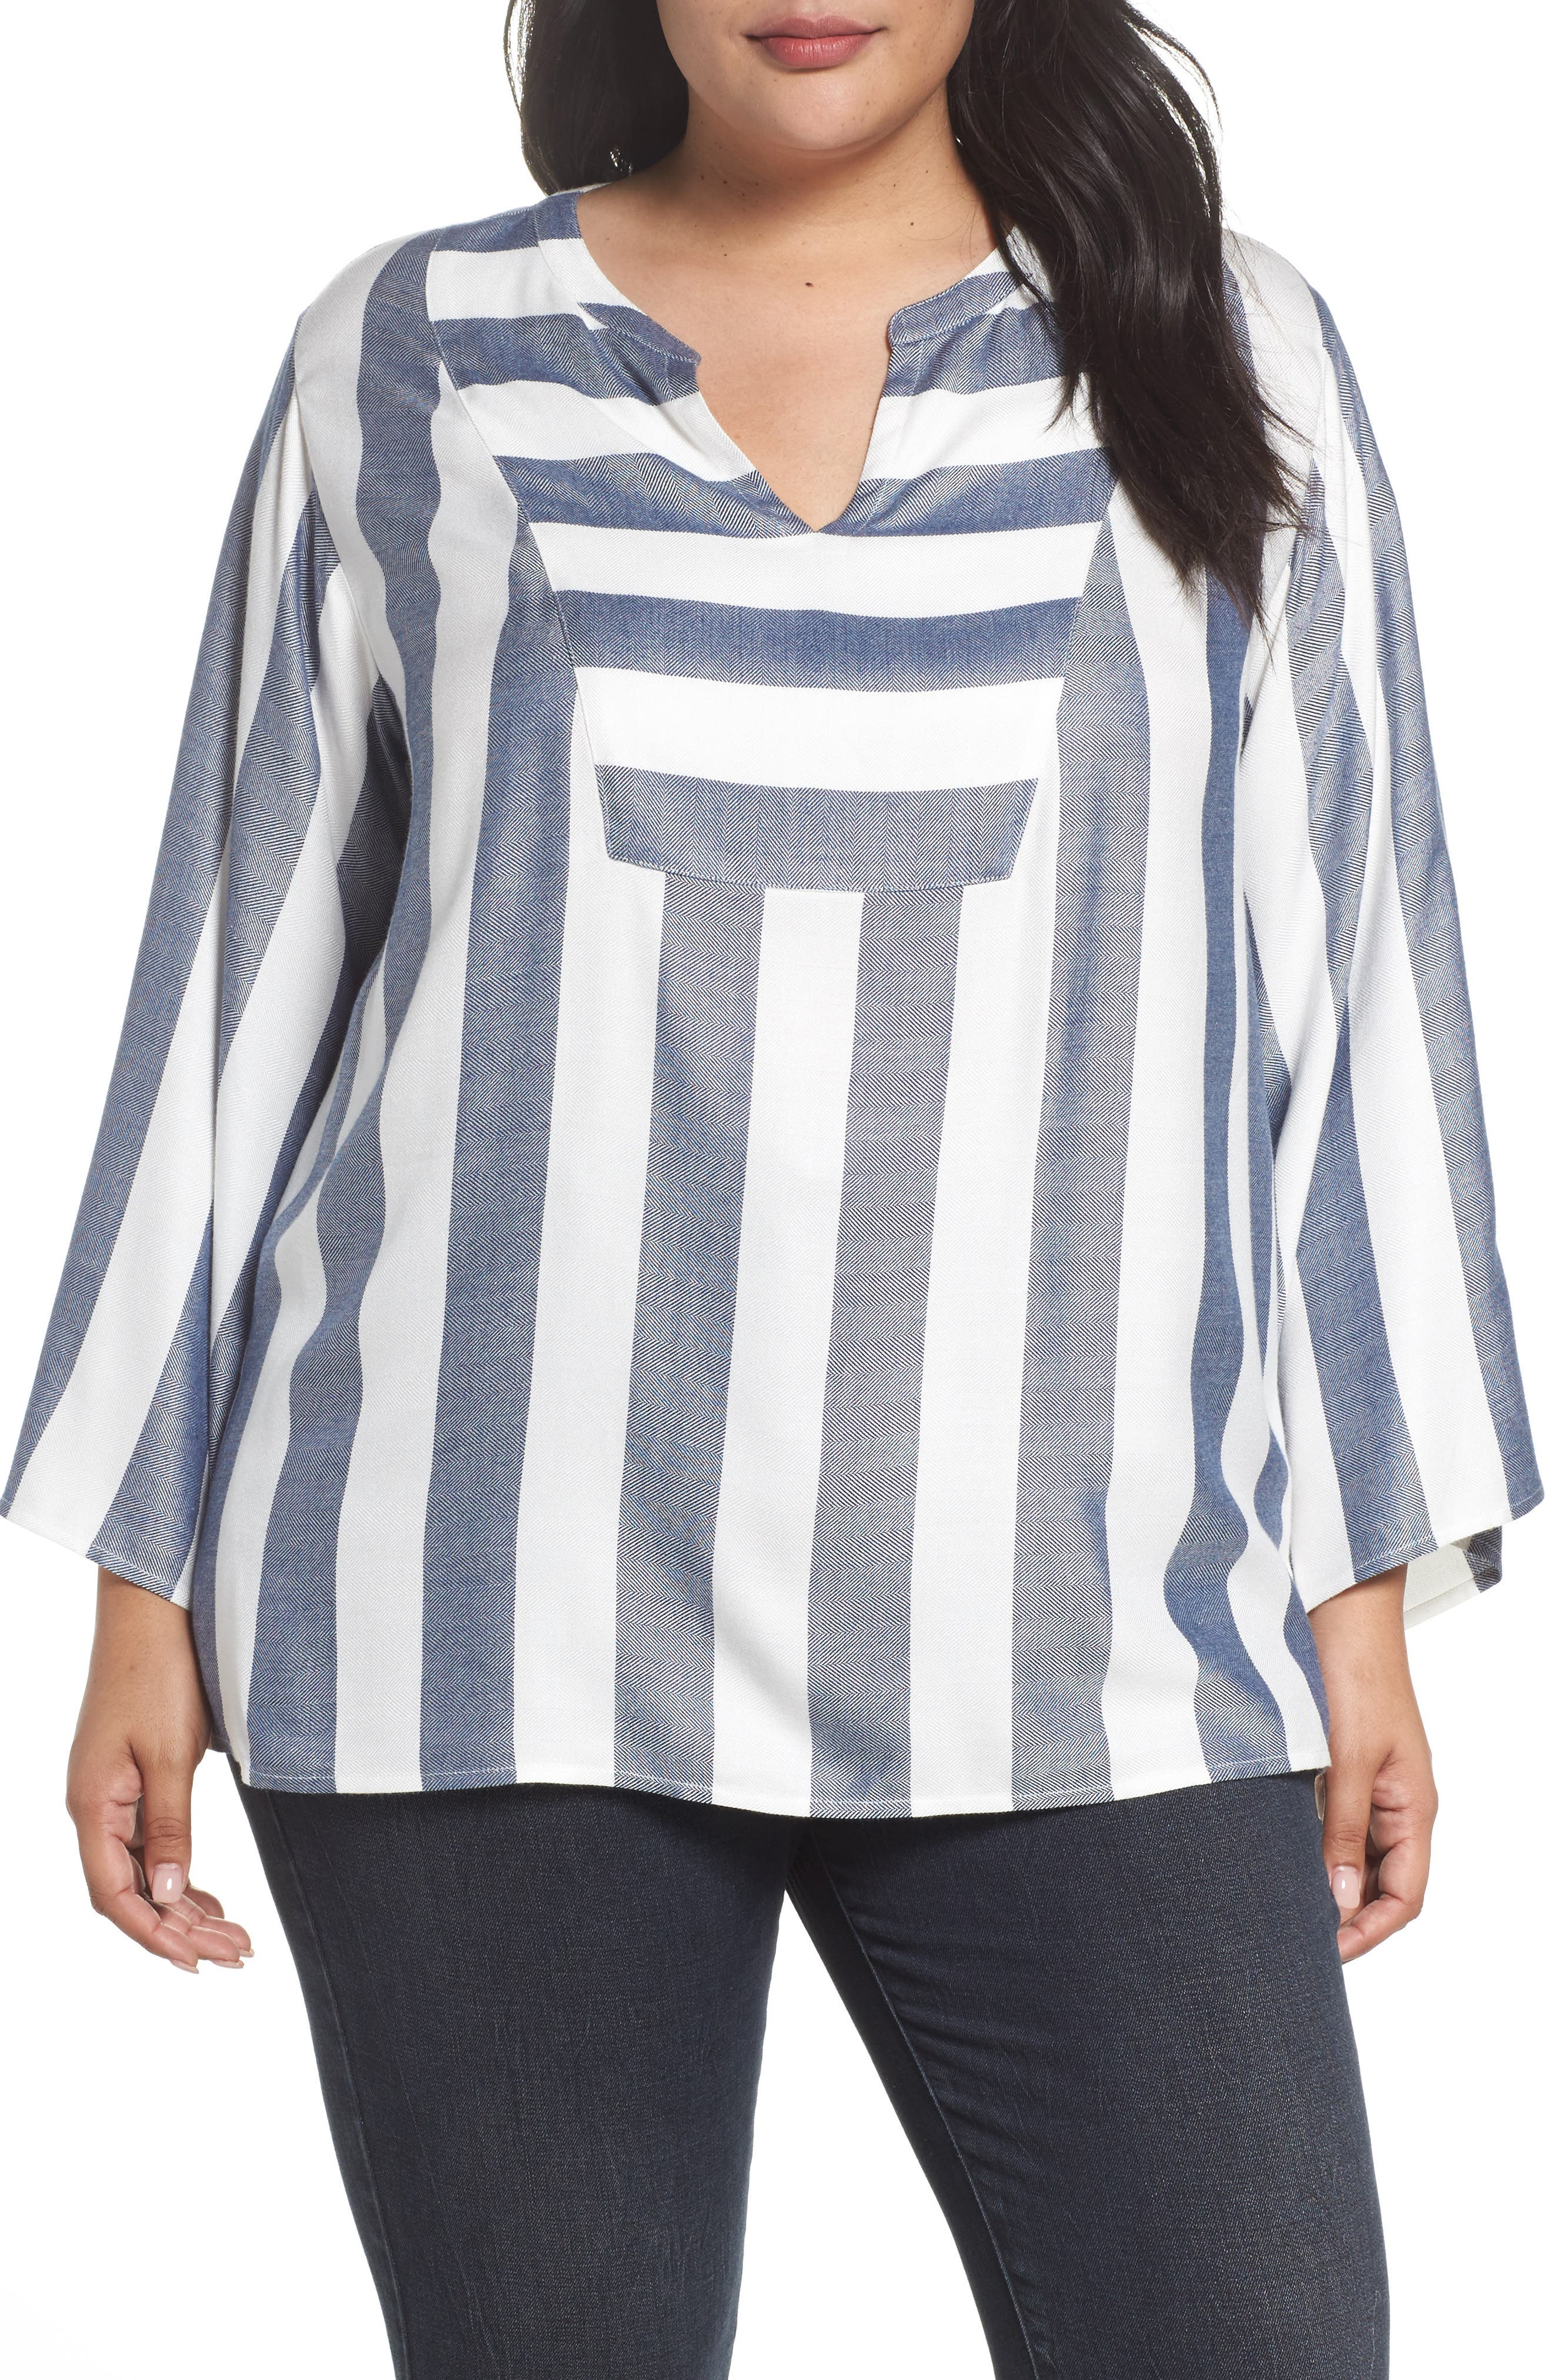 Main Image - Two by Vince Camuto Bell Sleeve Stripe Top (Plus Size)